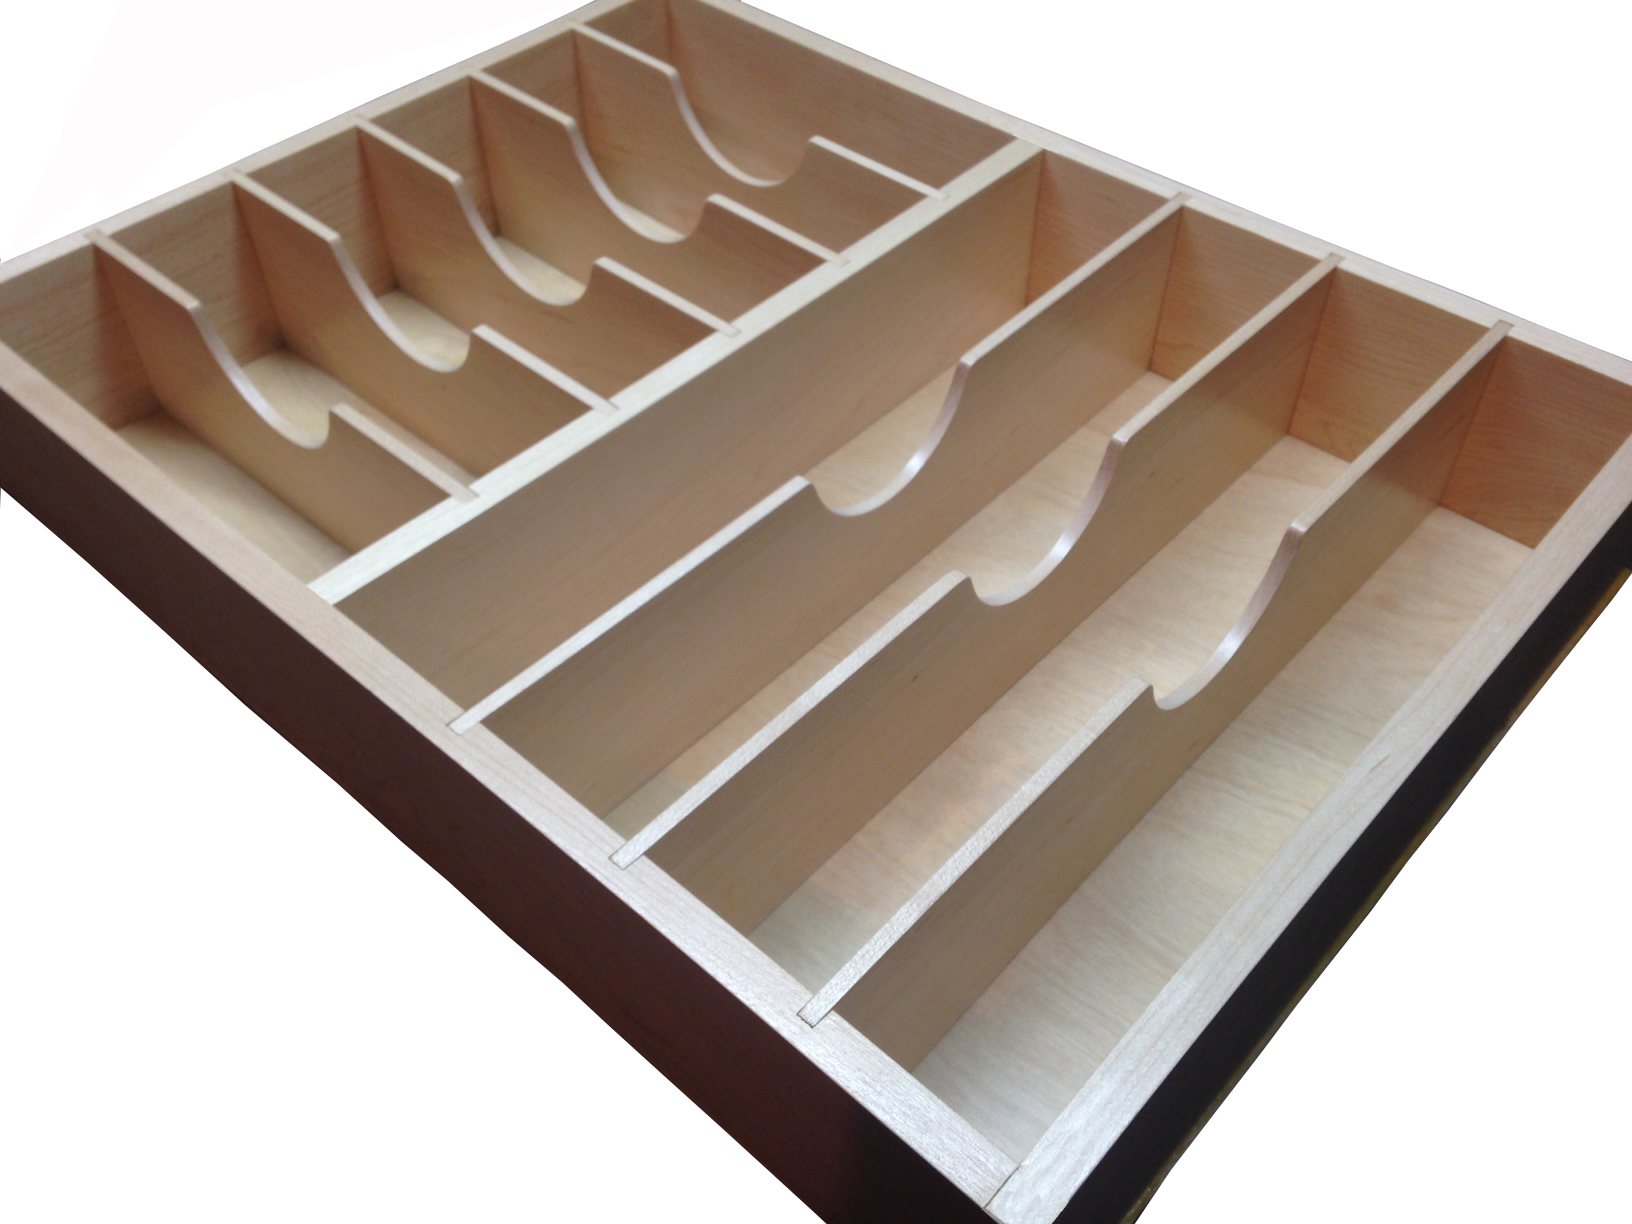 custom maple drawer insert with targeted dividers